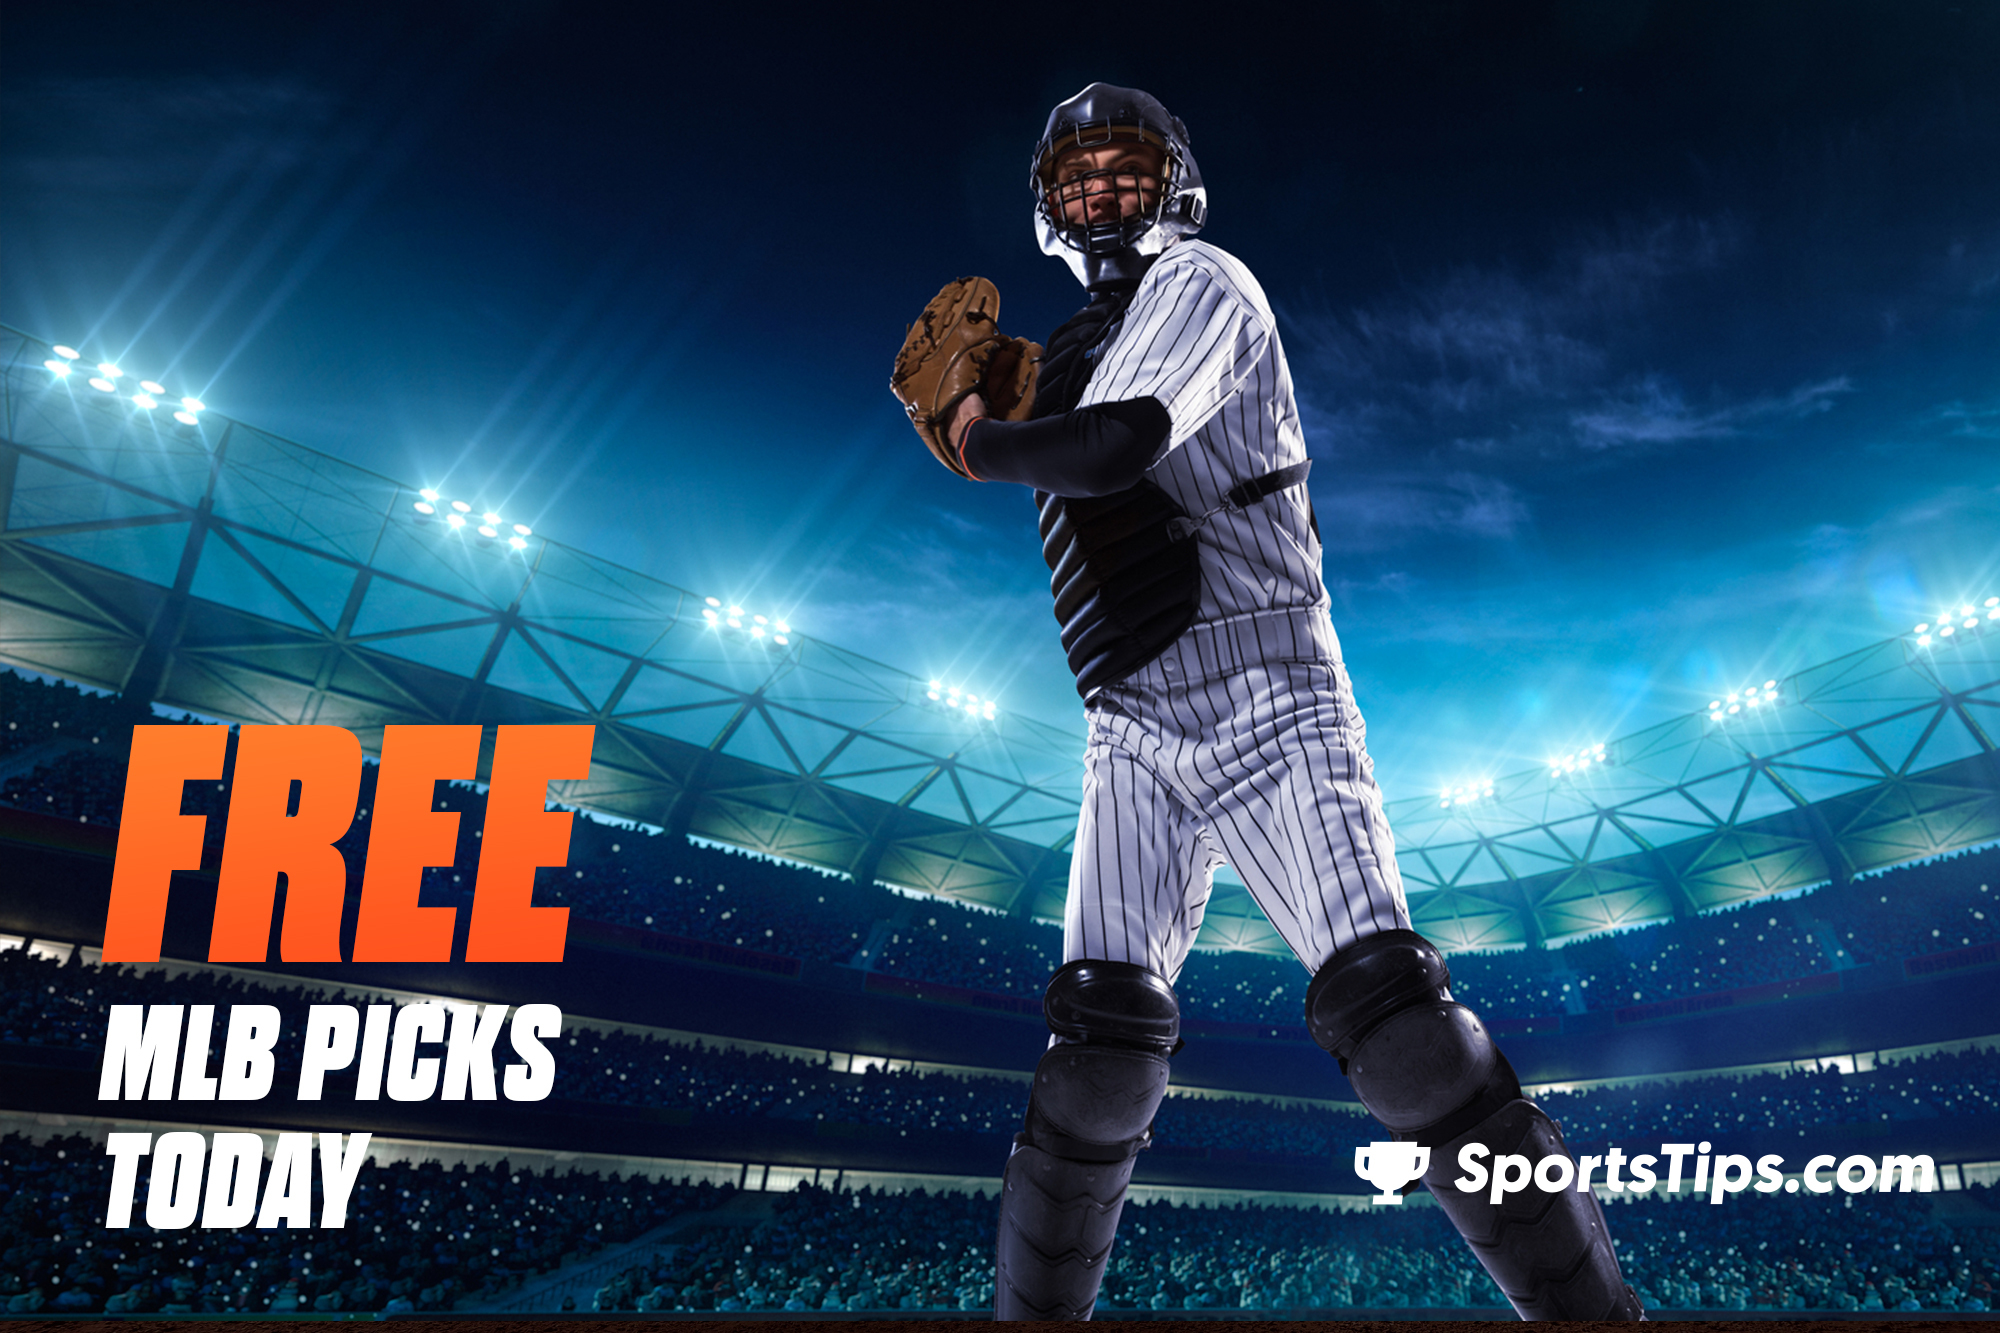 Free MLB Picks Today for Tuesday, April 20th, 2021